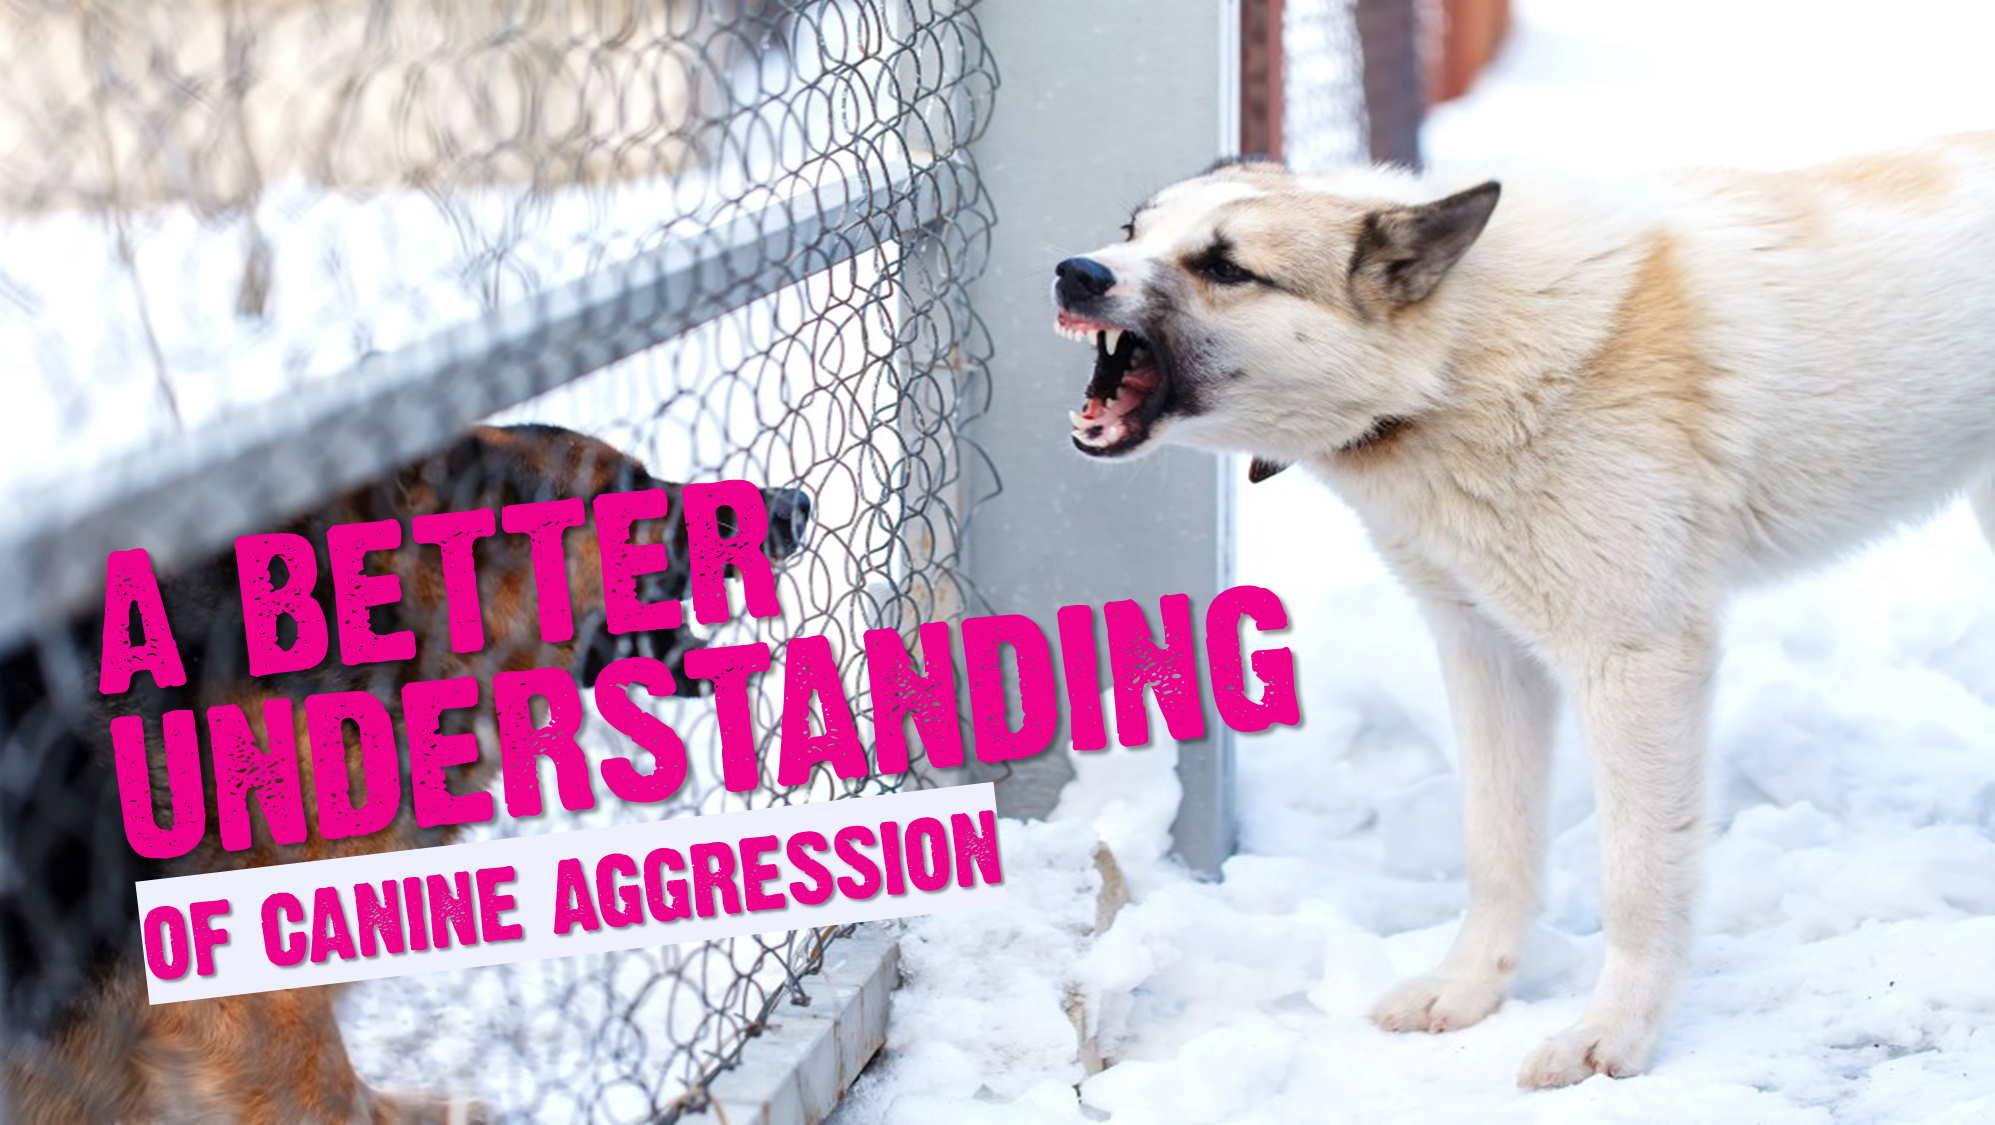 A Better Understanding of Animal Aggression